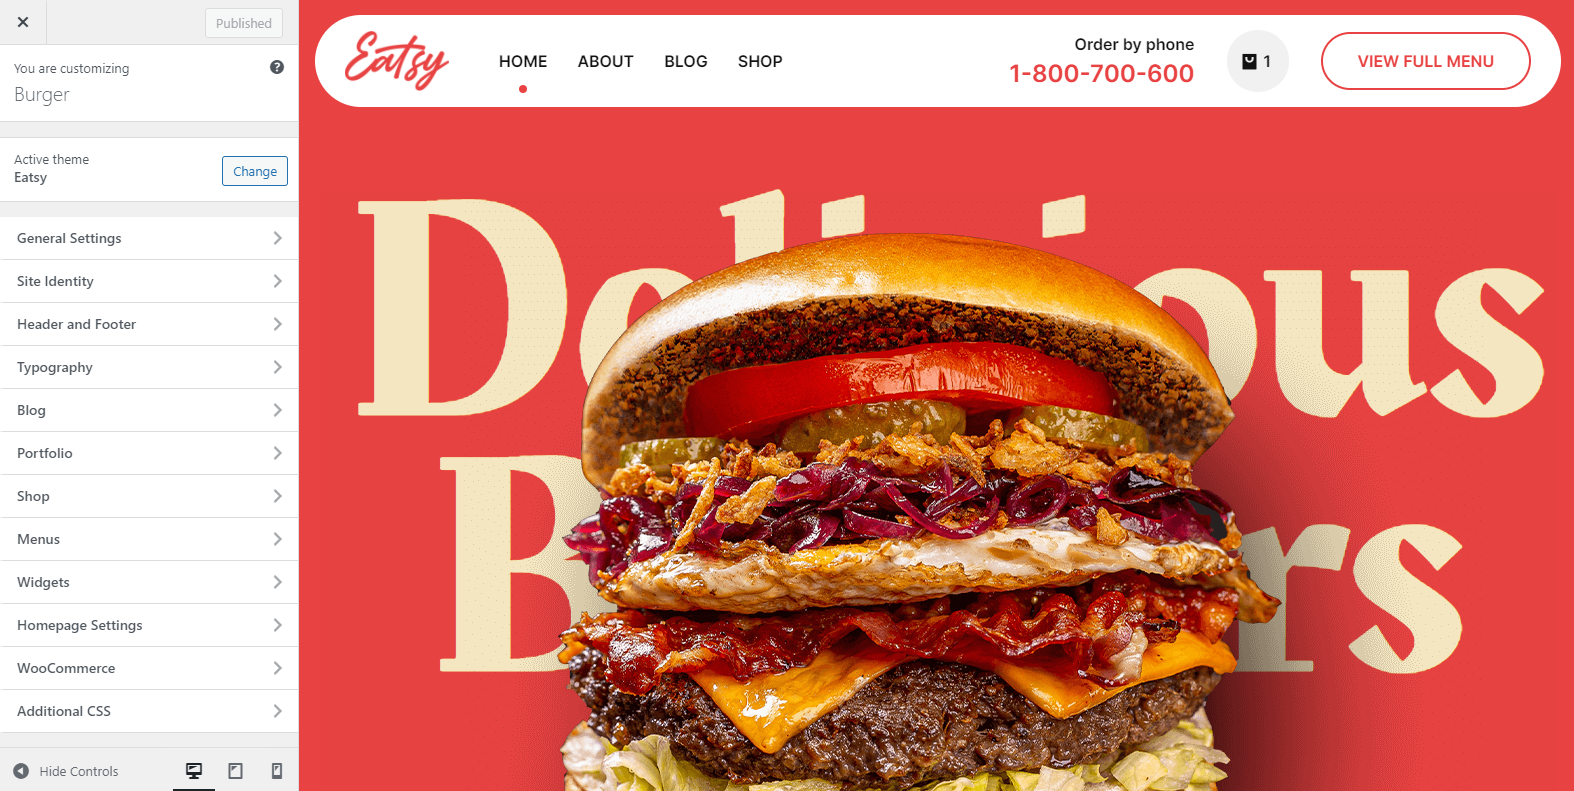 http://documentation.bold-themes.com/eatsy/wp-content/uploads/sites/64/2021/04/customize.png